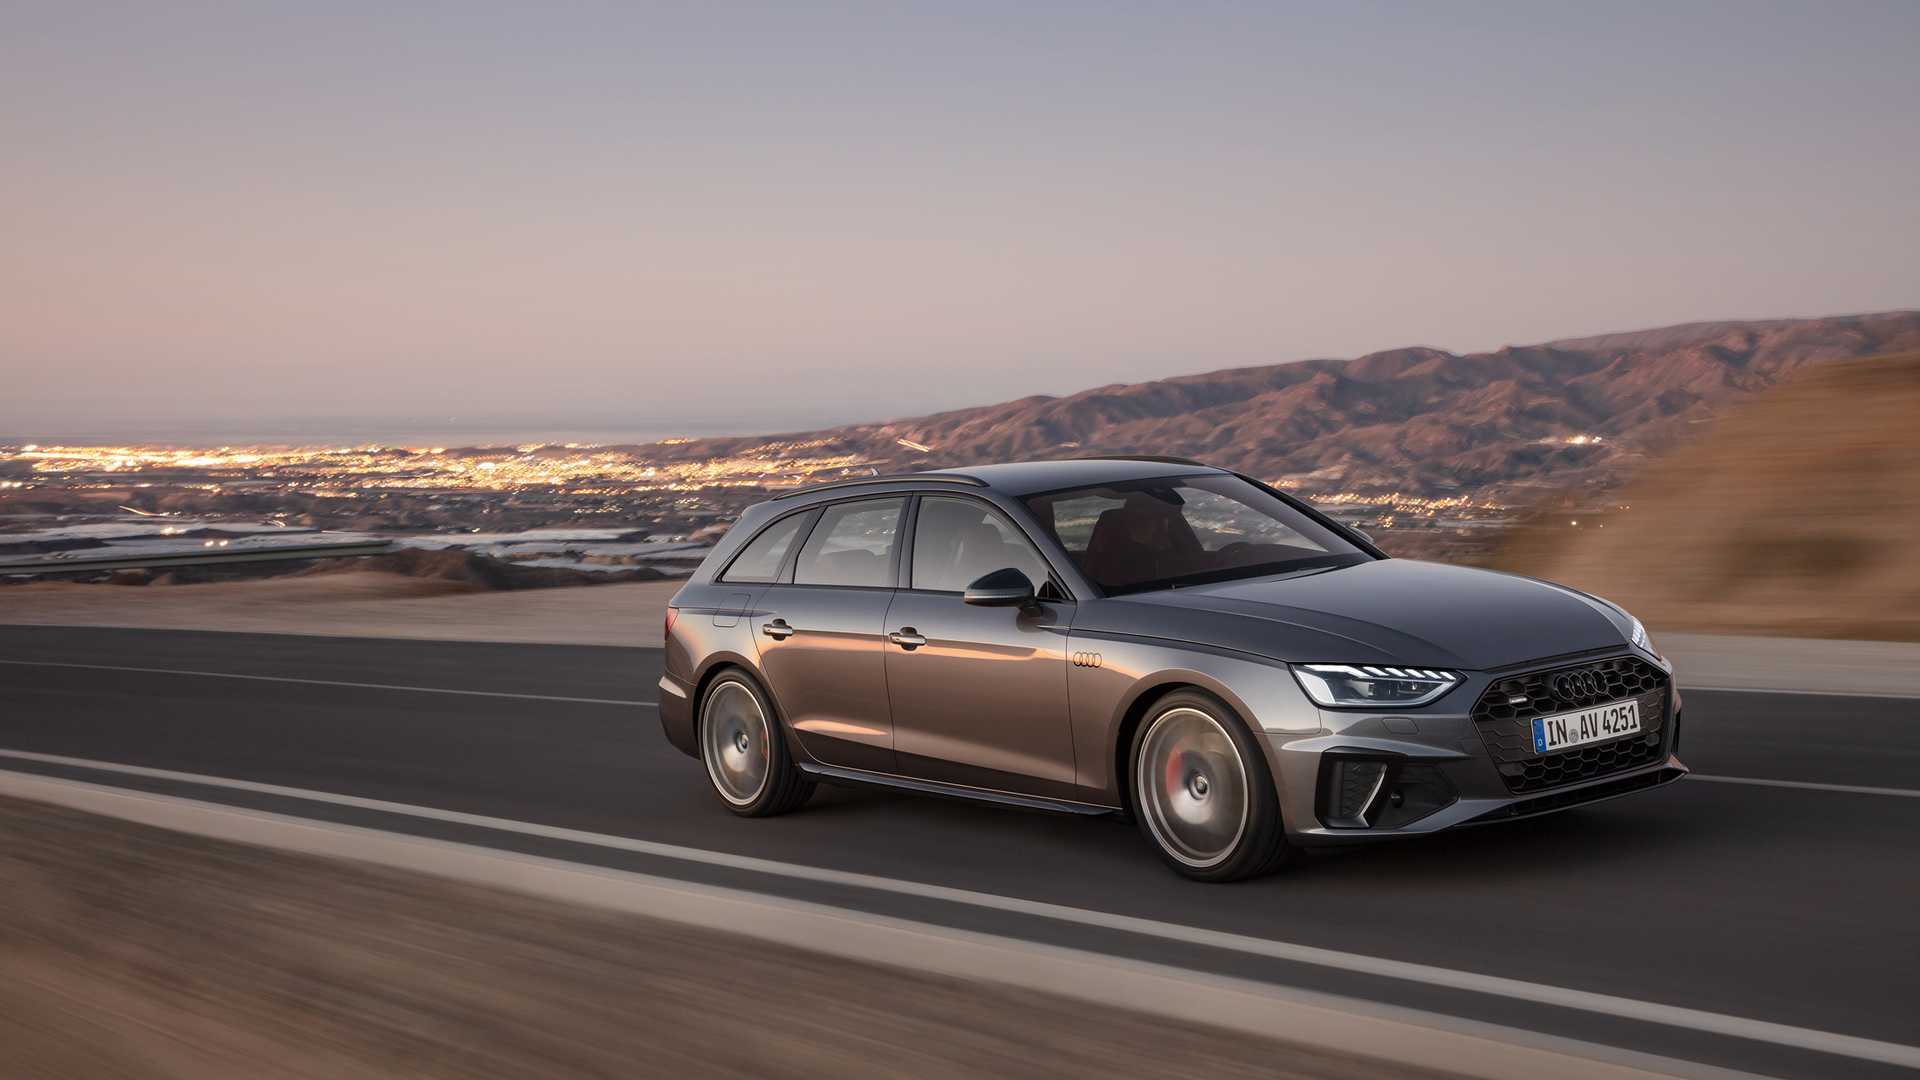 2020 Audi A4 Avant (Color: Terra Gray) Front Three-Quarter Wallpapers (1)